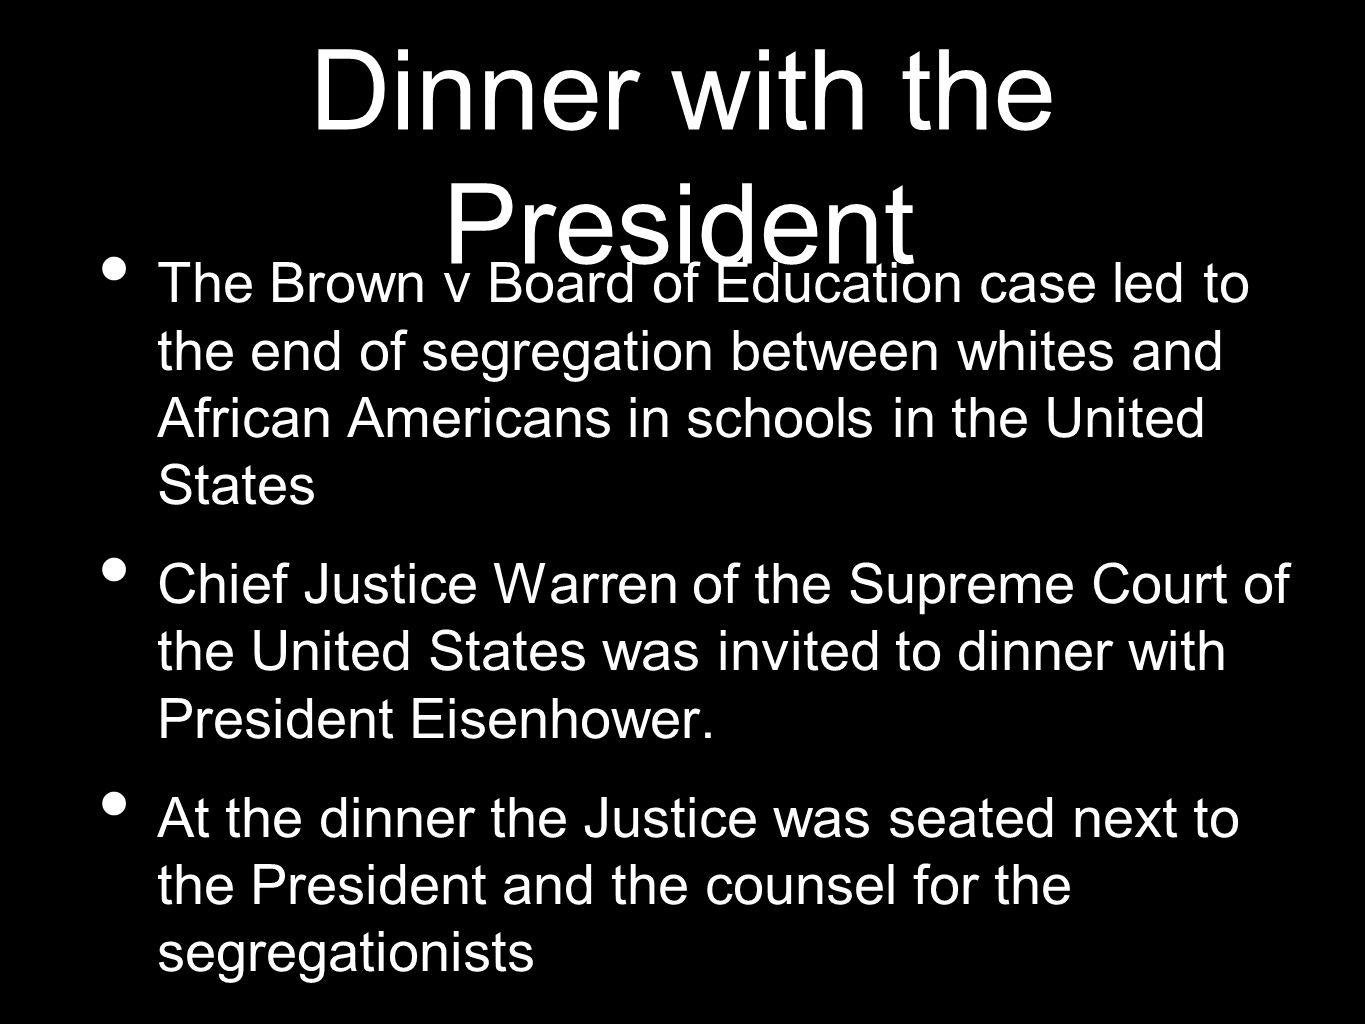 Dinner with the President